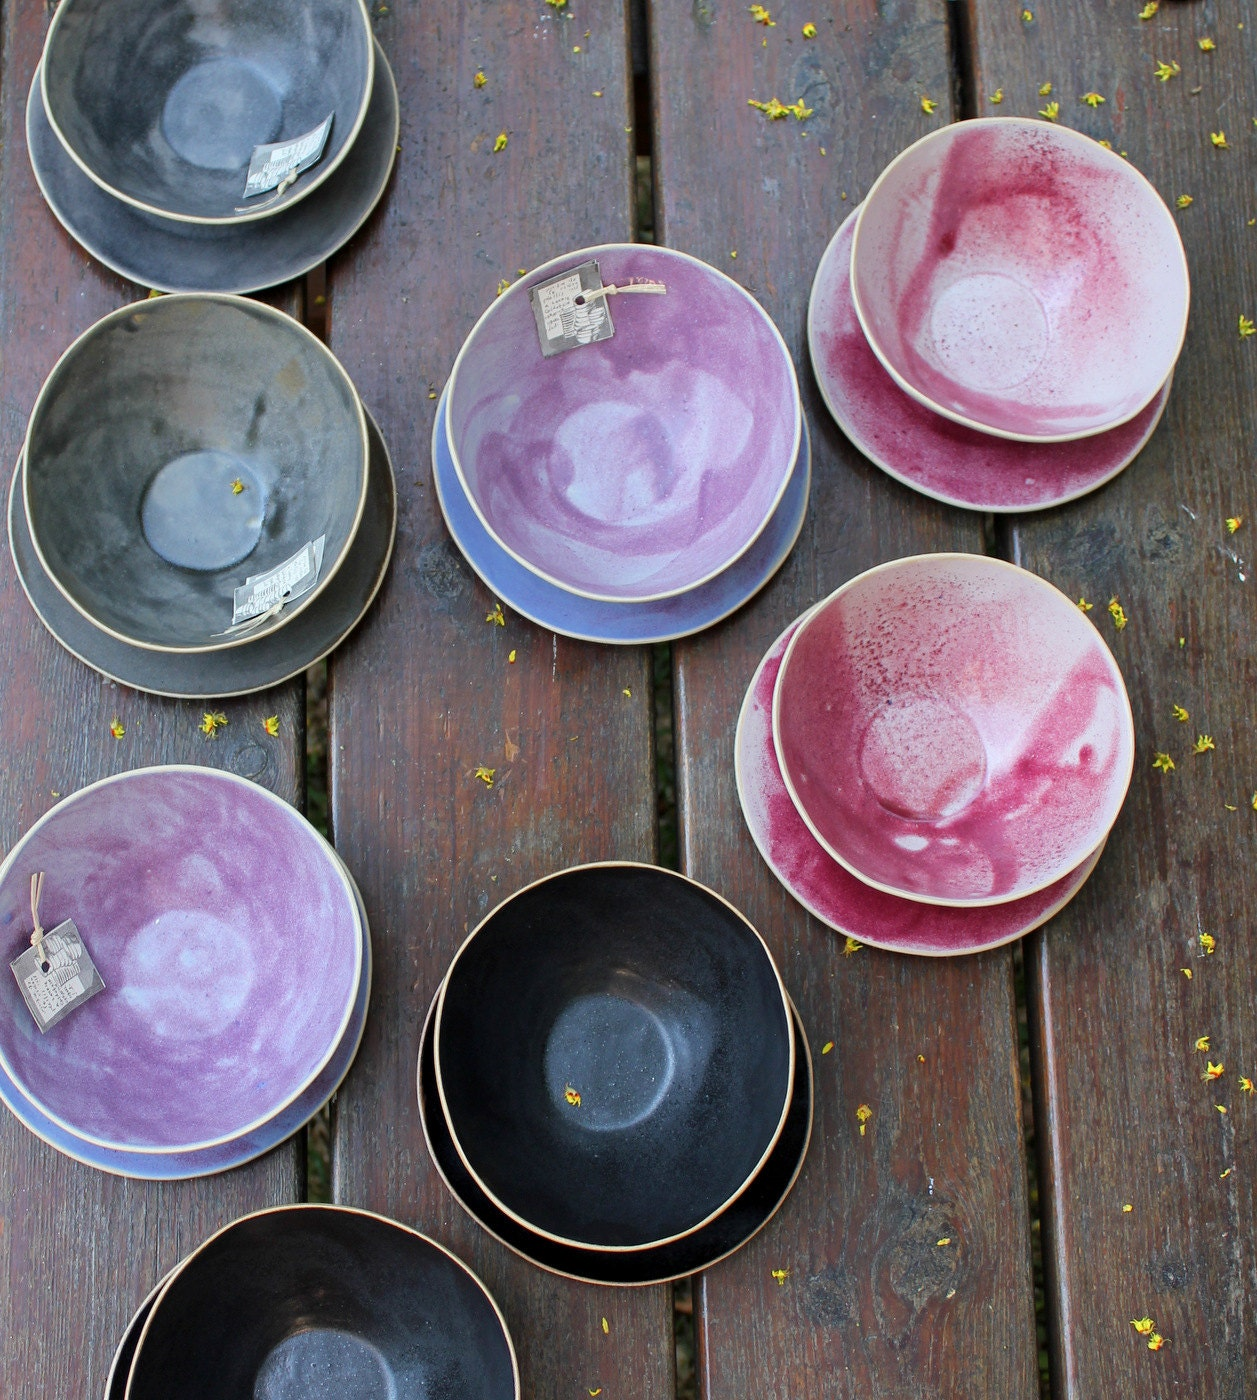 Lovely black, grey, pink and purple bowls for soup or cereal or ice cream - lauriegceramics